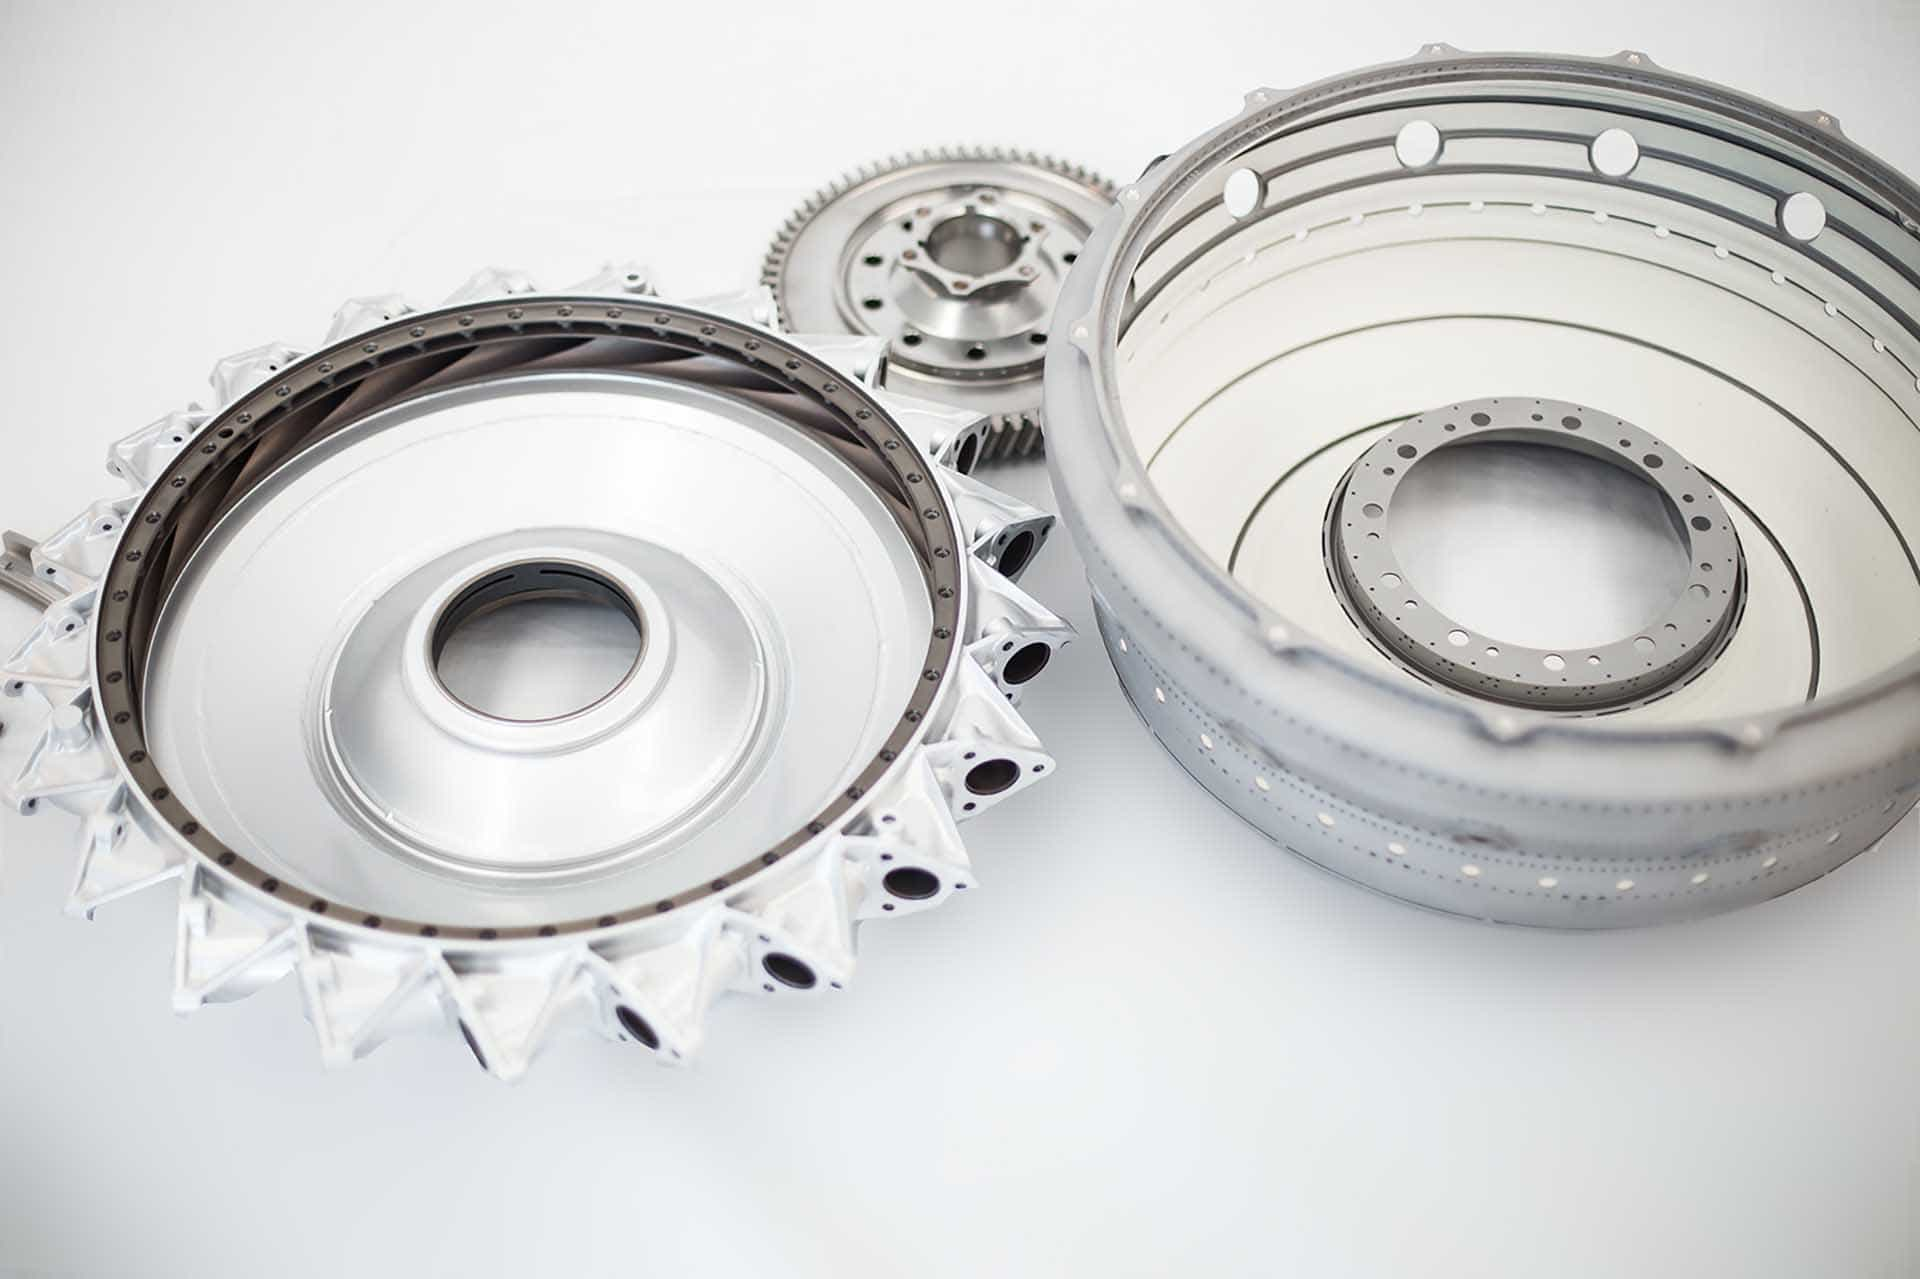 PW100 Components